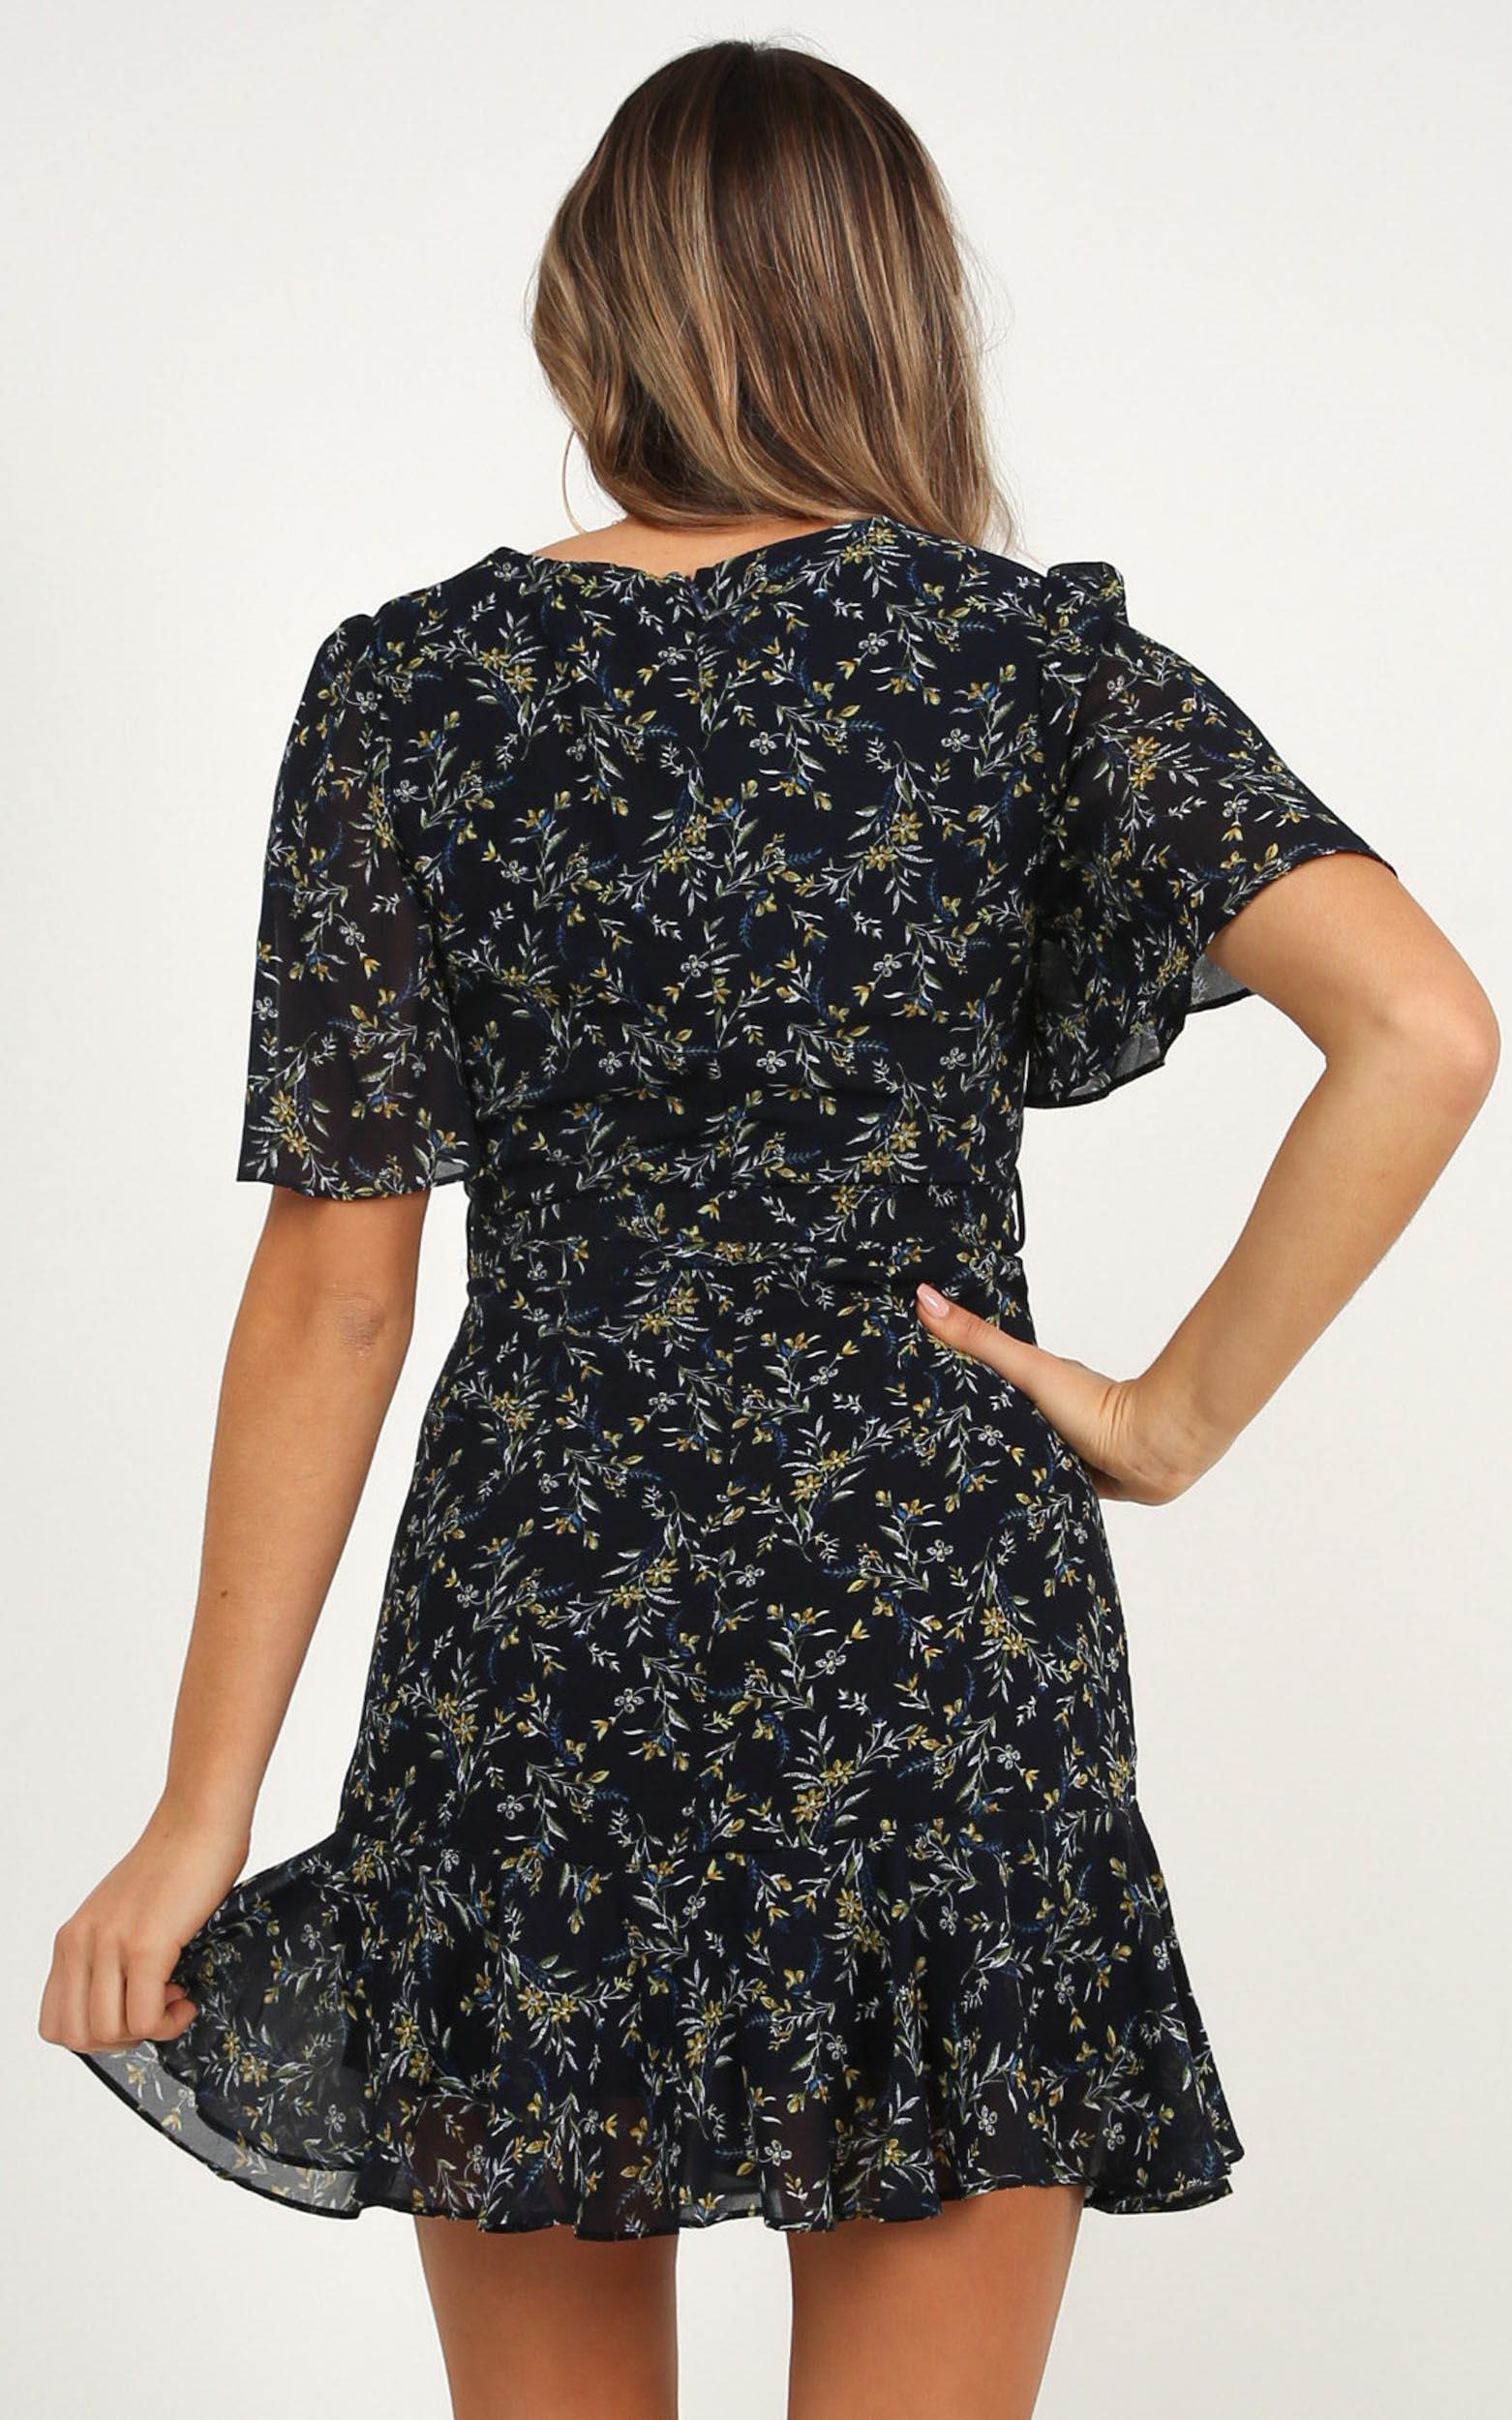 Small Space dress in navy floral - 12 (L), Navy, hi-res image number null